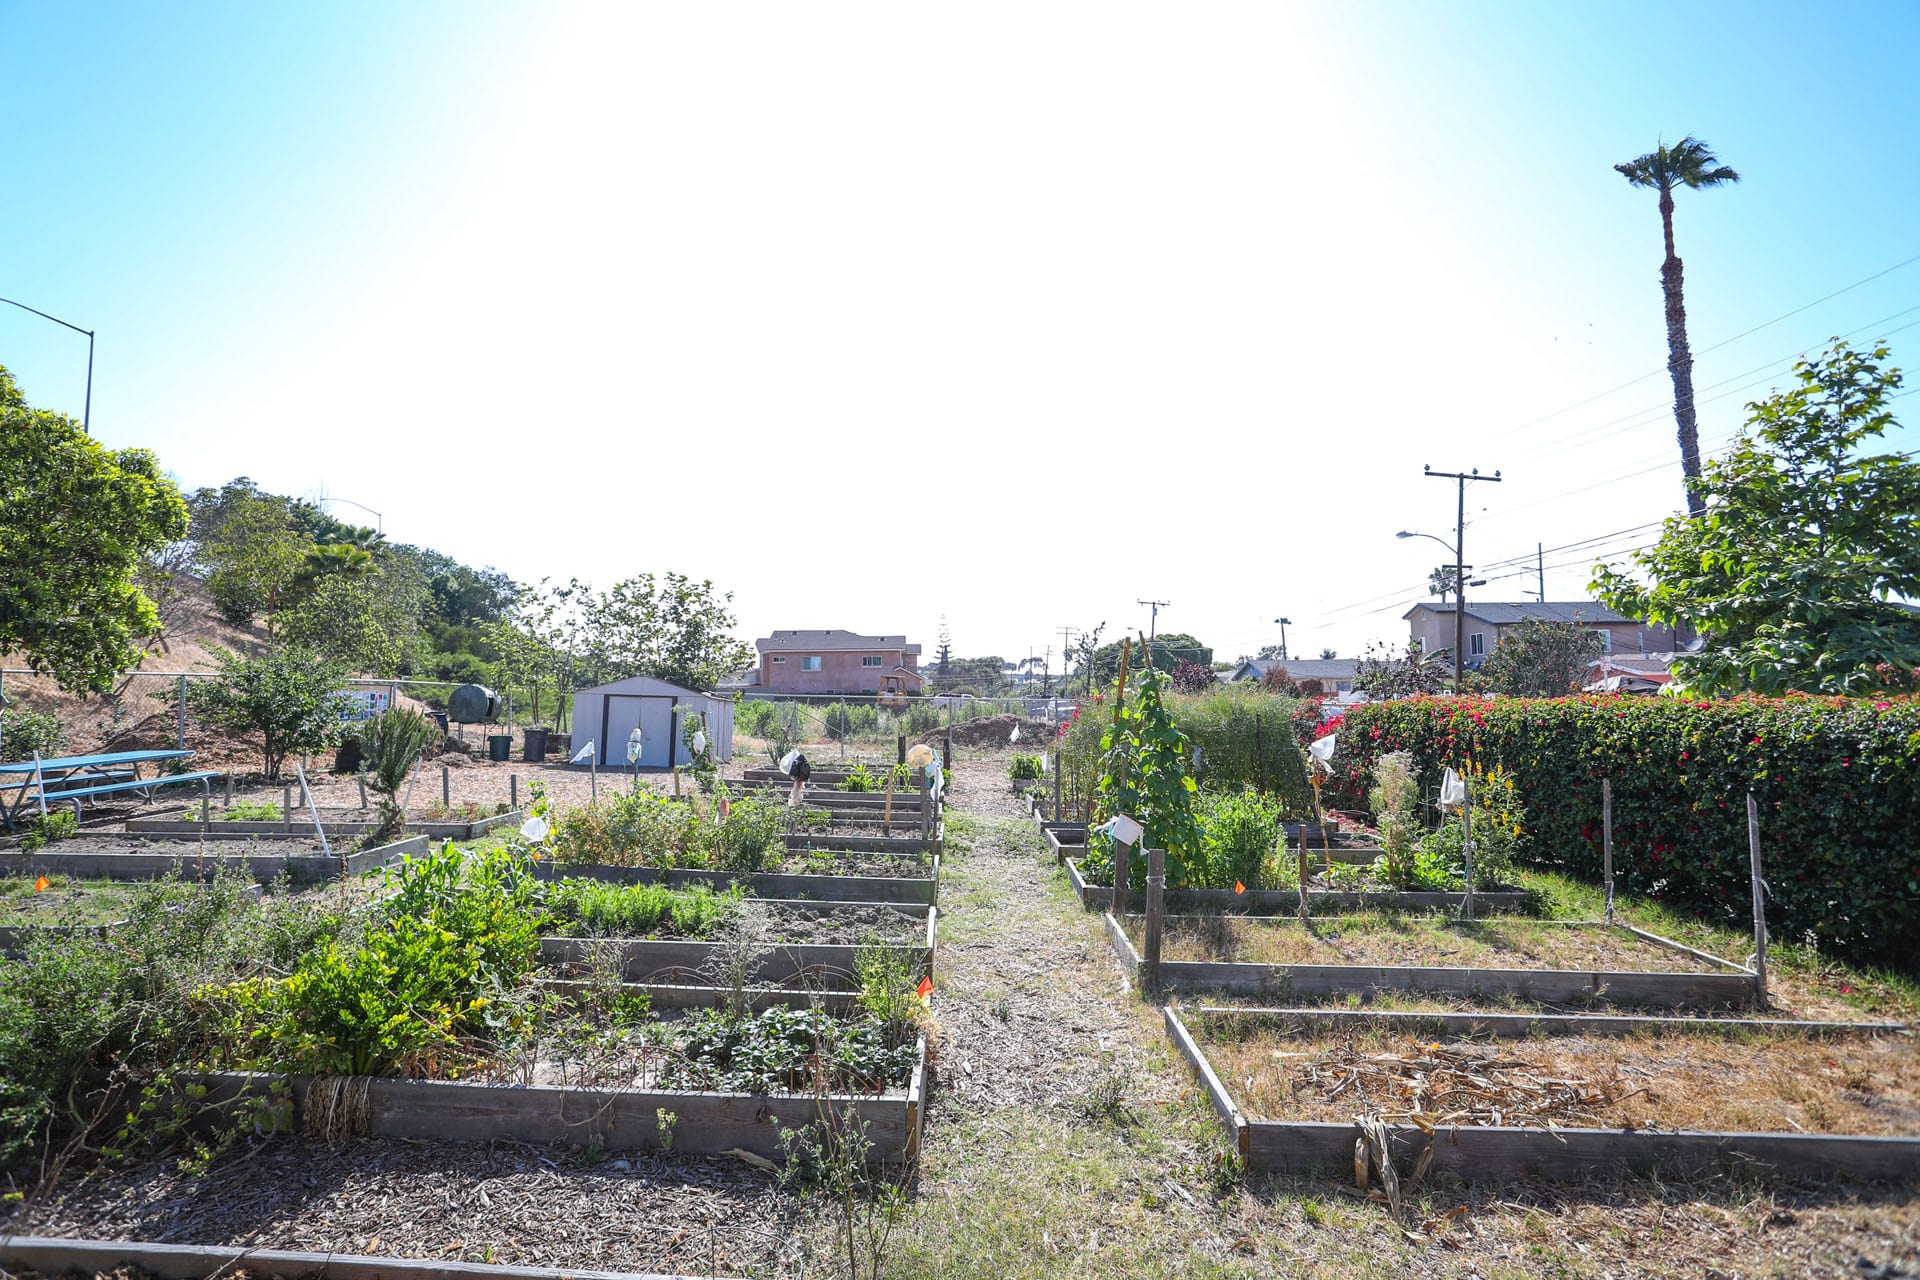 Flower beds in a community garden